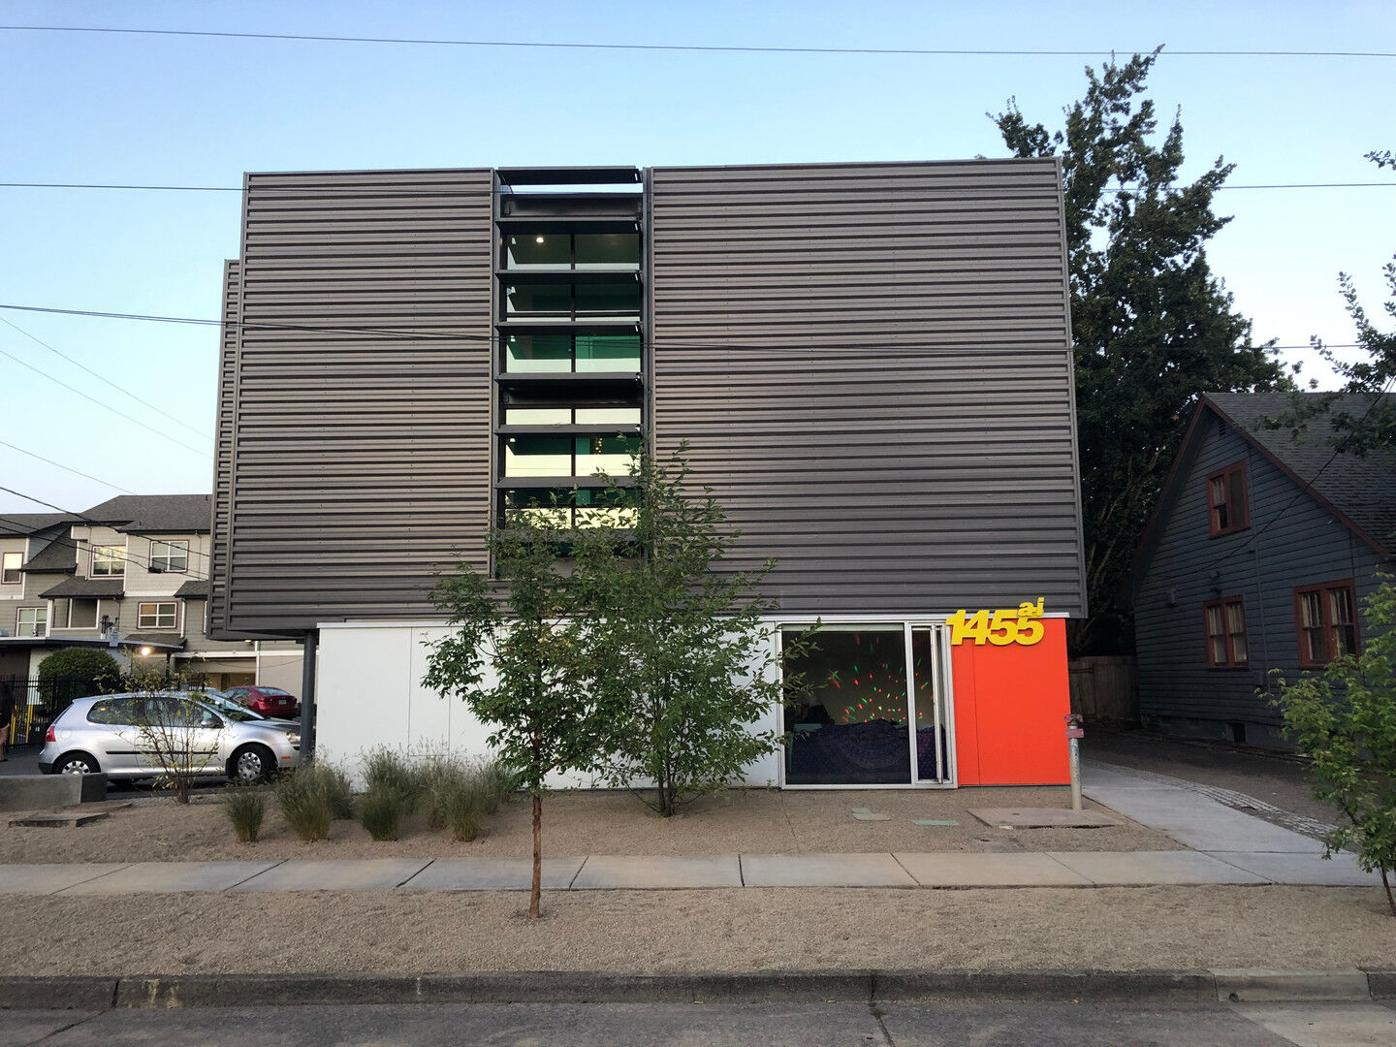 Room for rent in ultra-modern apartment - Washer/Dryer in unit!